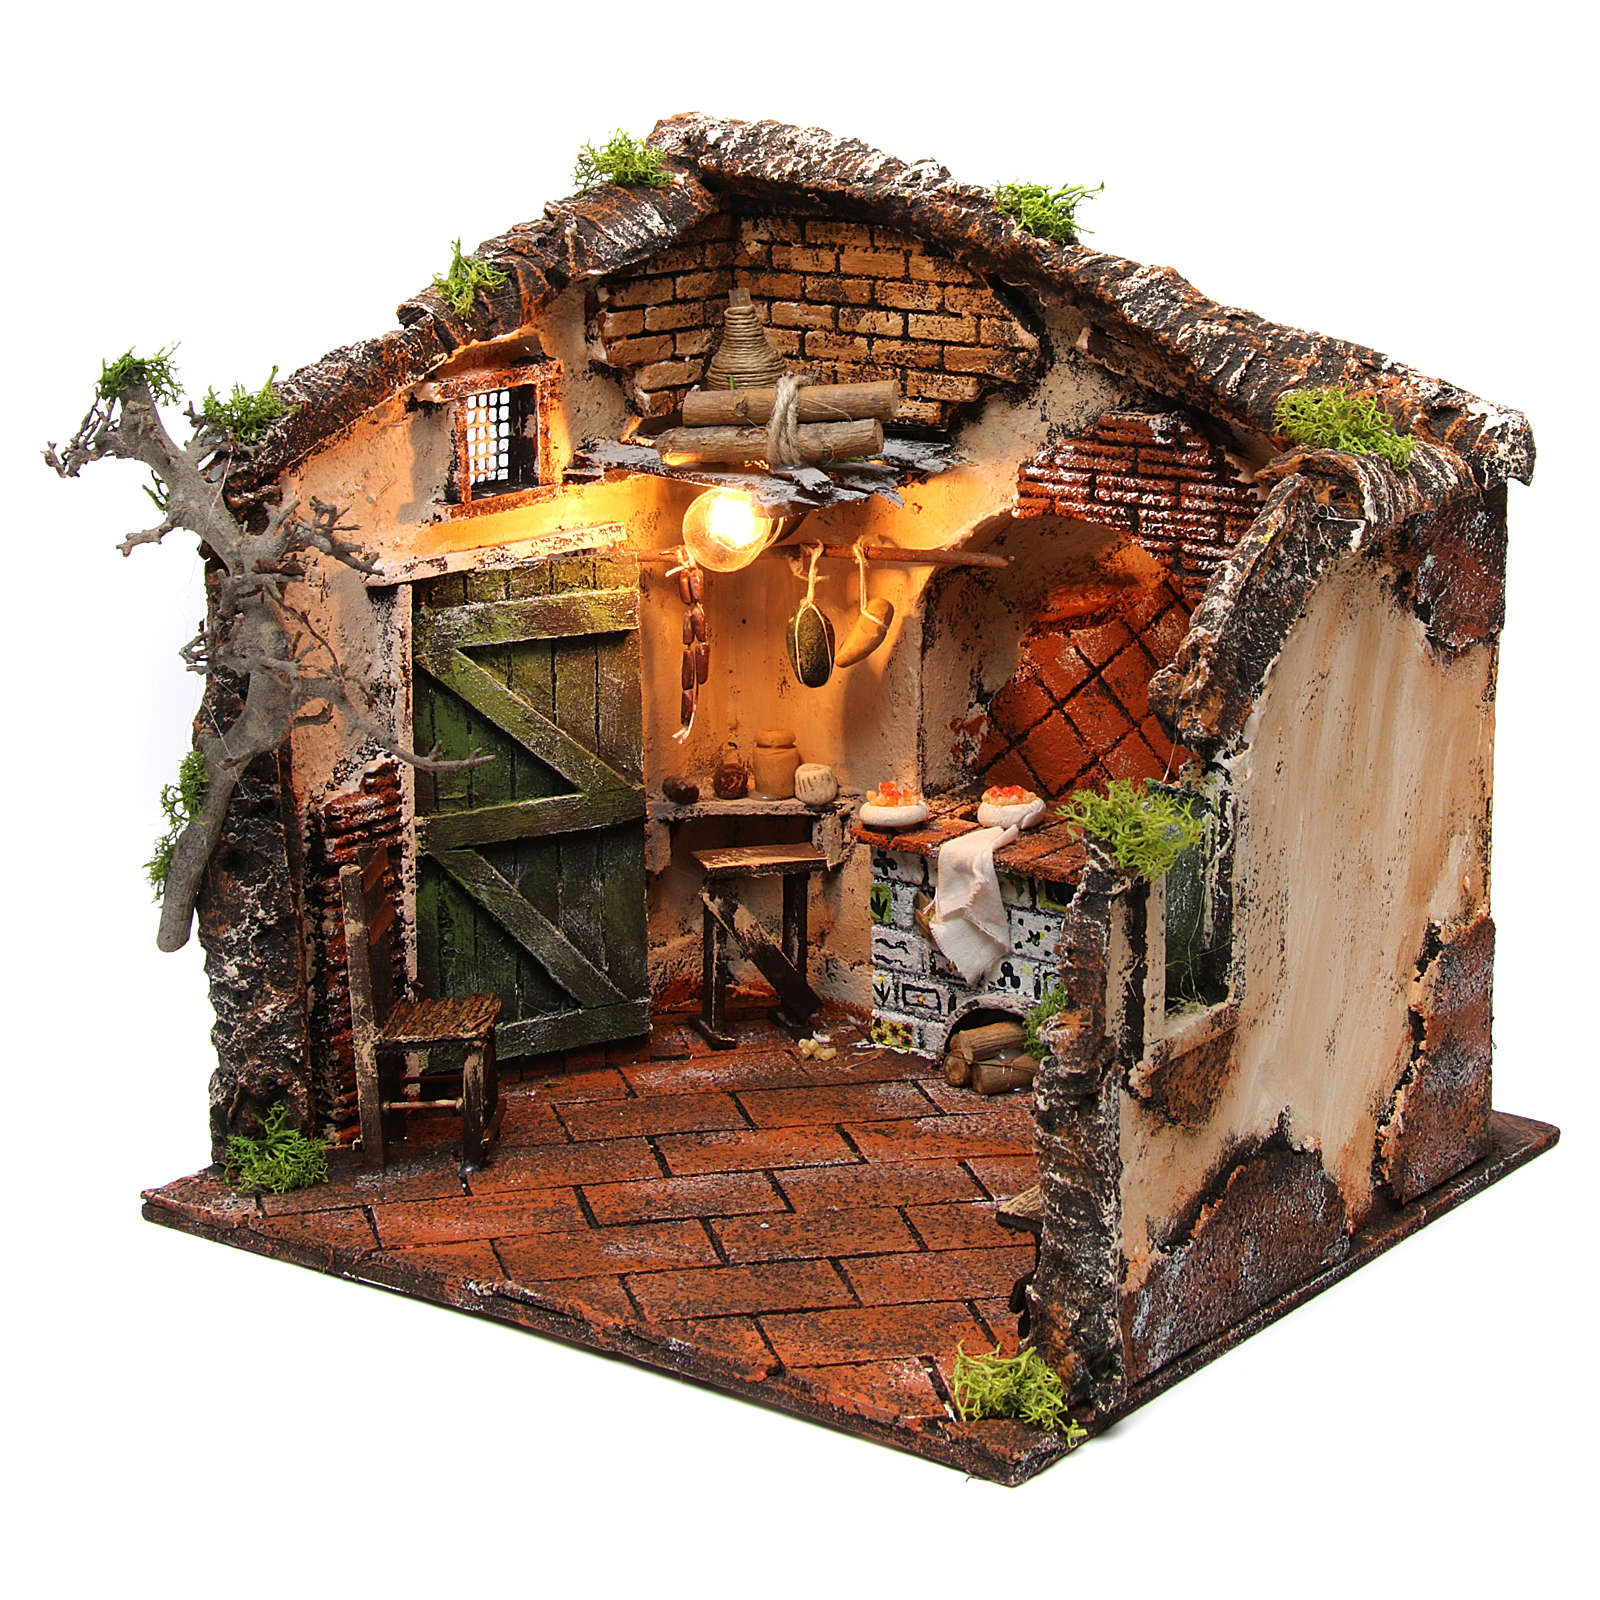 Illuminated internal part of the house 30x30x30 cm for Neapolitan nativity scene 4